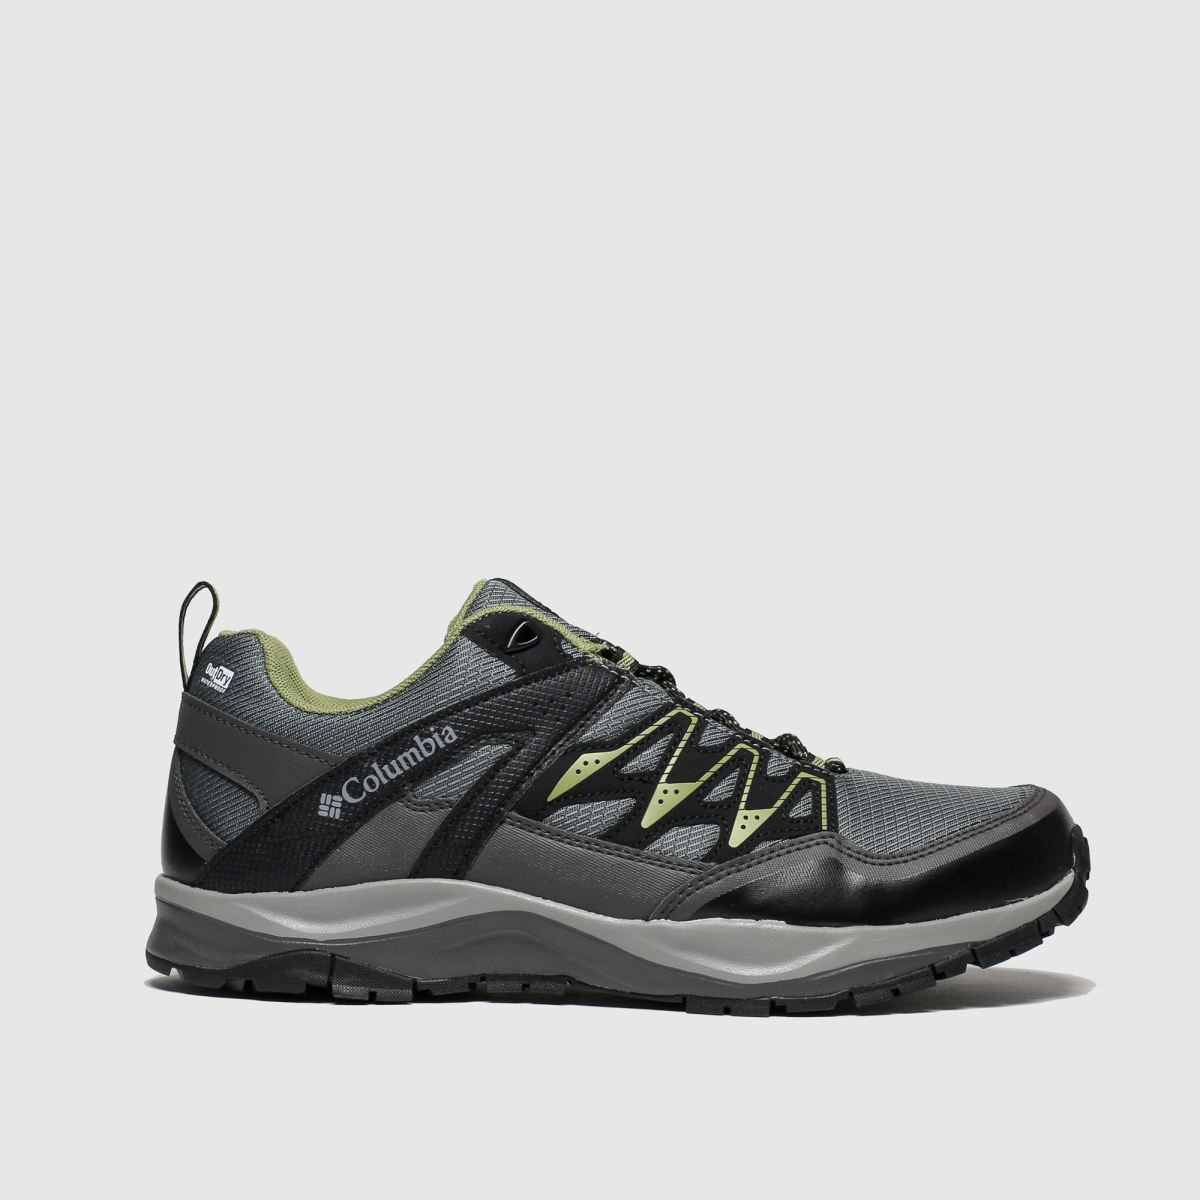 Columbia Grey & Lime Wayfinder Outdry Trainers